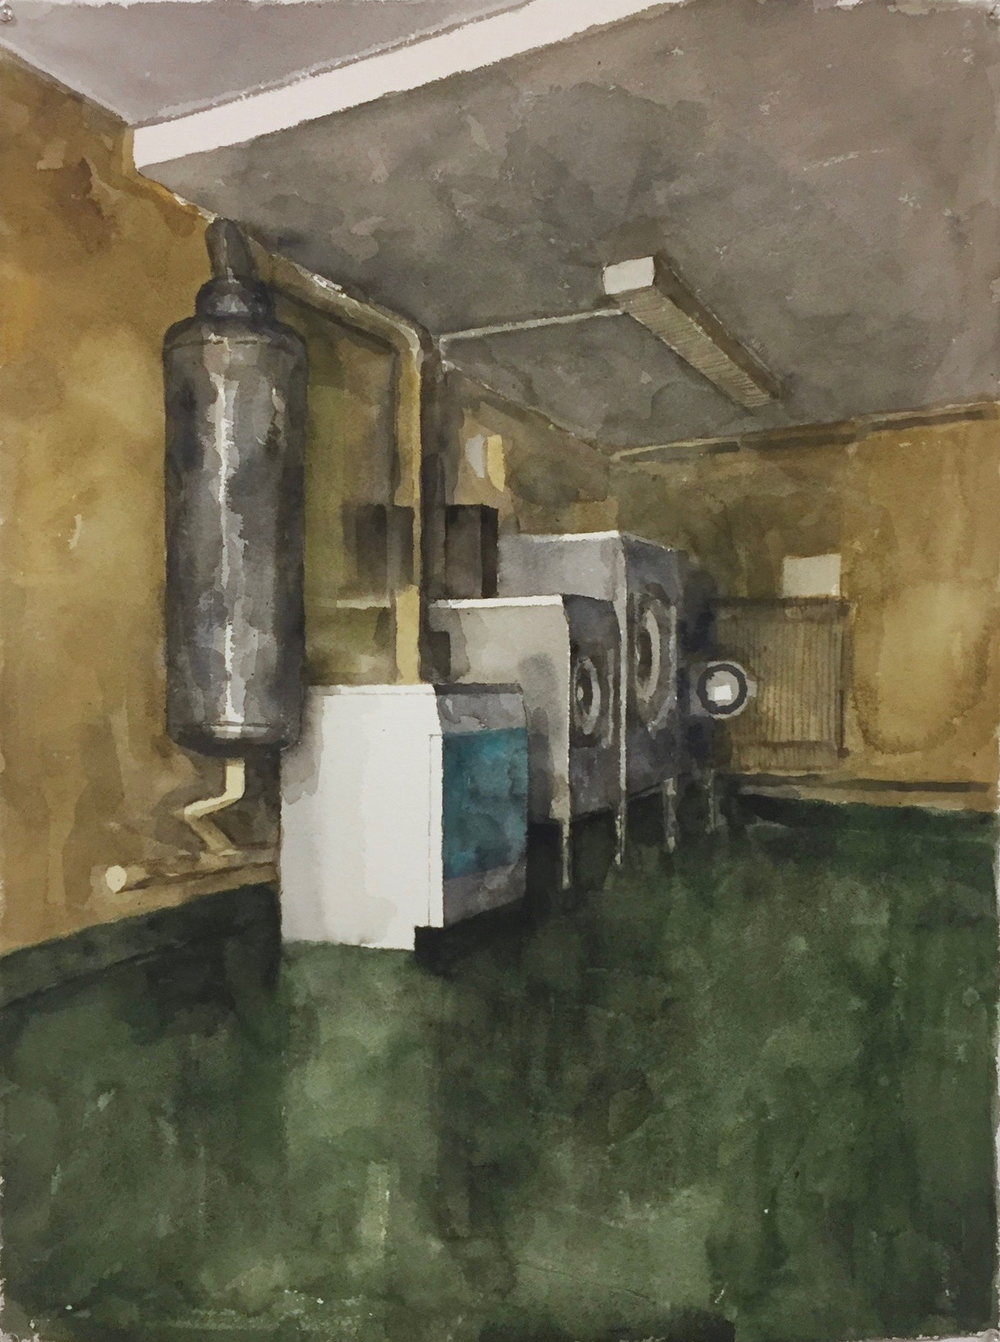 Laundry (Cité des Arts - study), 2016, watercolour on 640gsm Arches, 560mm x 750mm